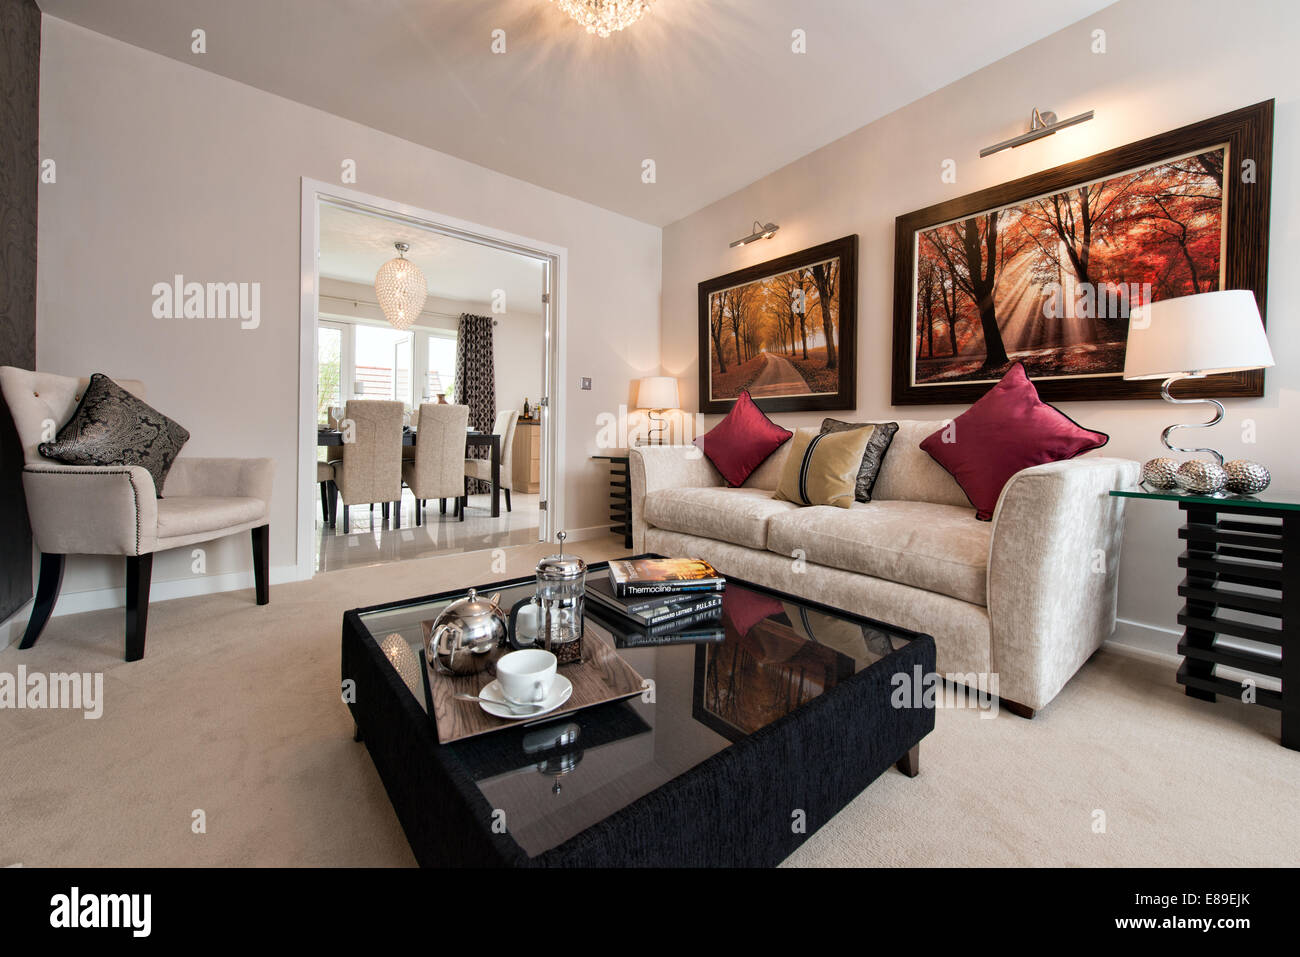 The living room of a Persimmon Homes show home on a typical